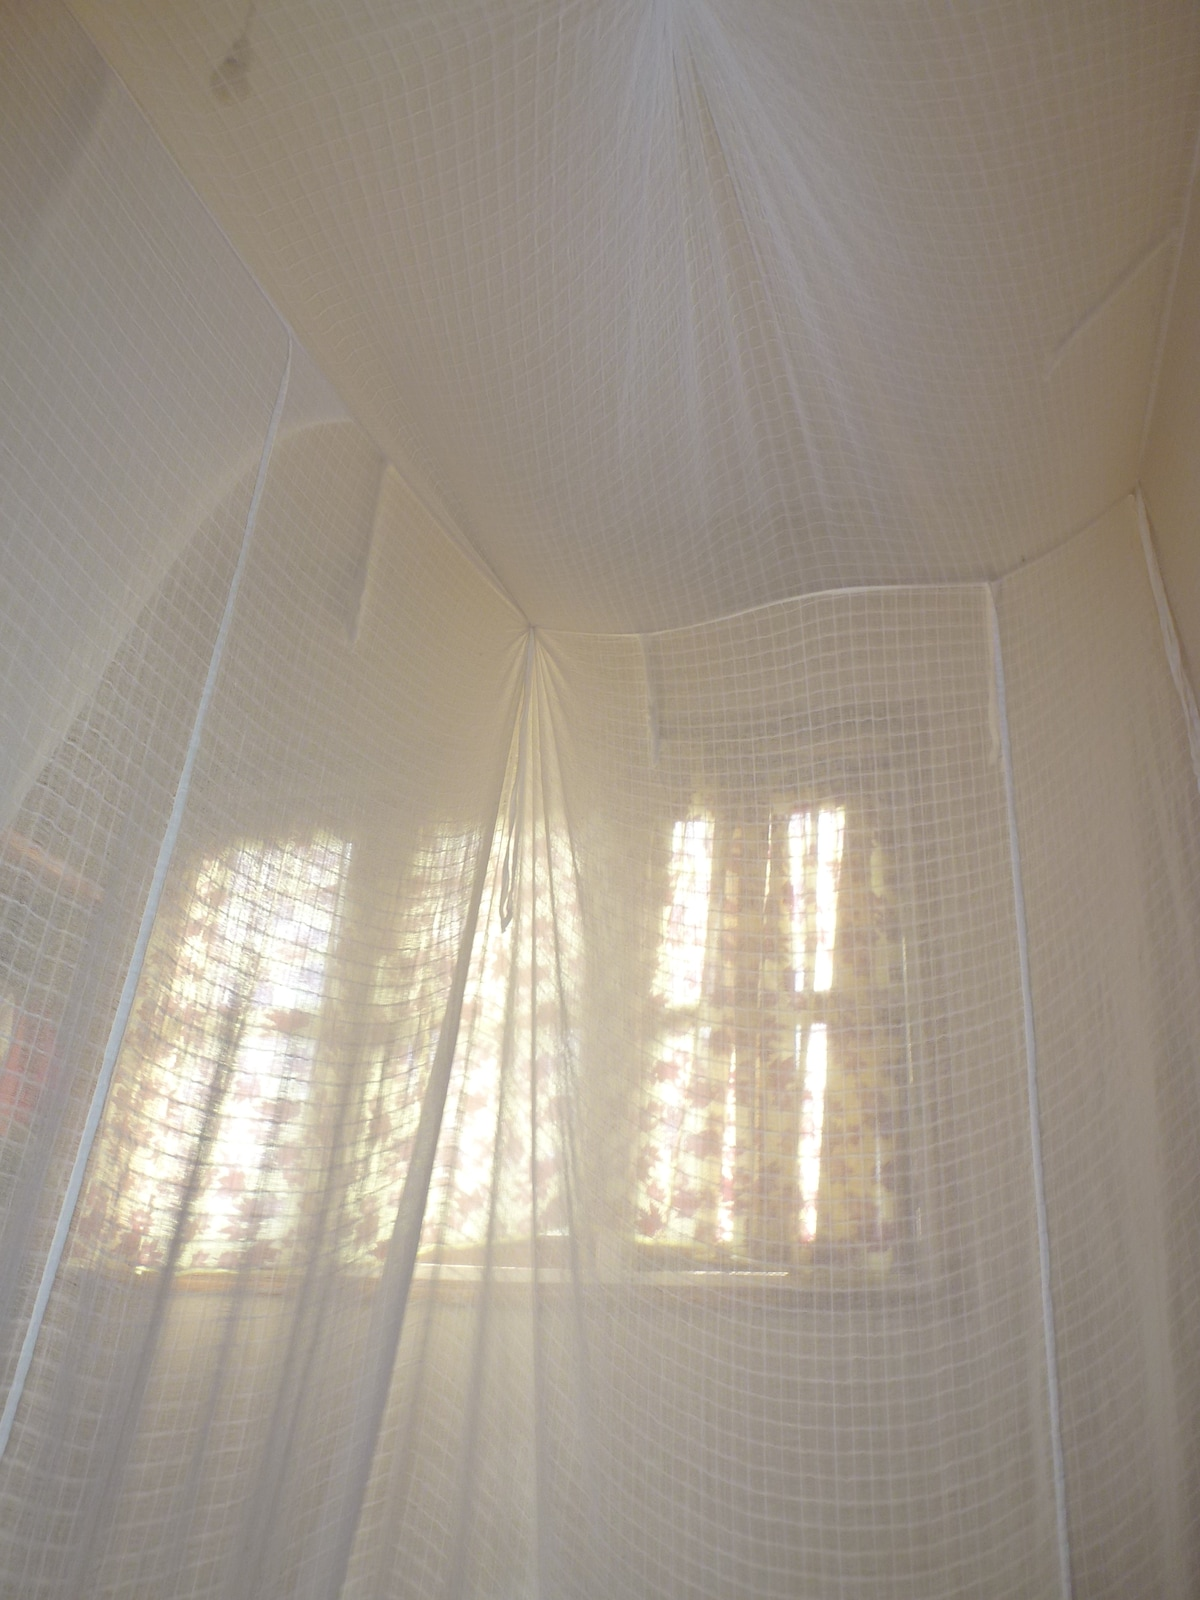 Rise and shine to the sun filtering through your mosquito net!